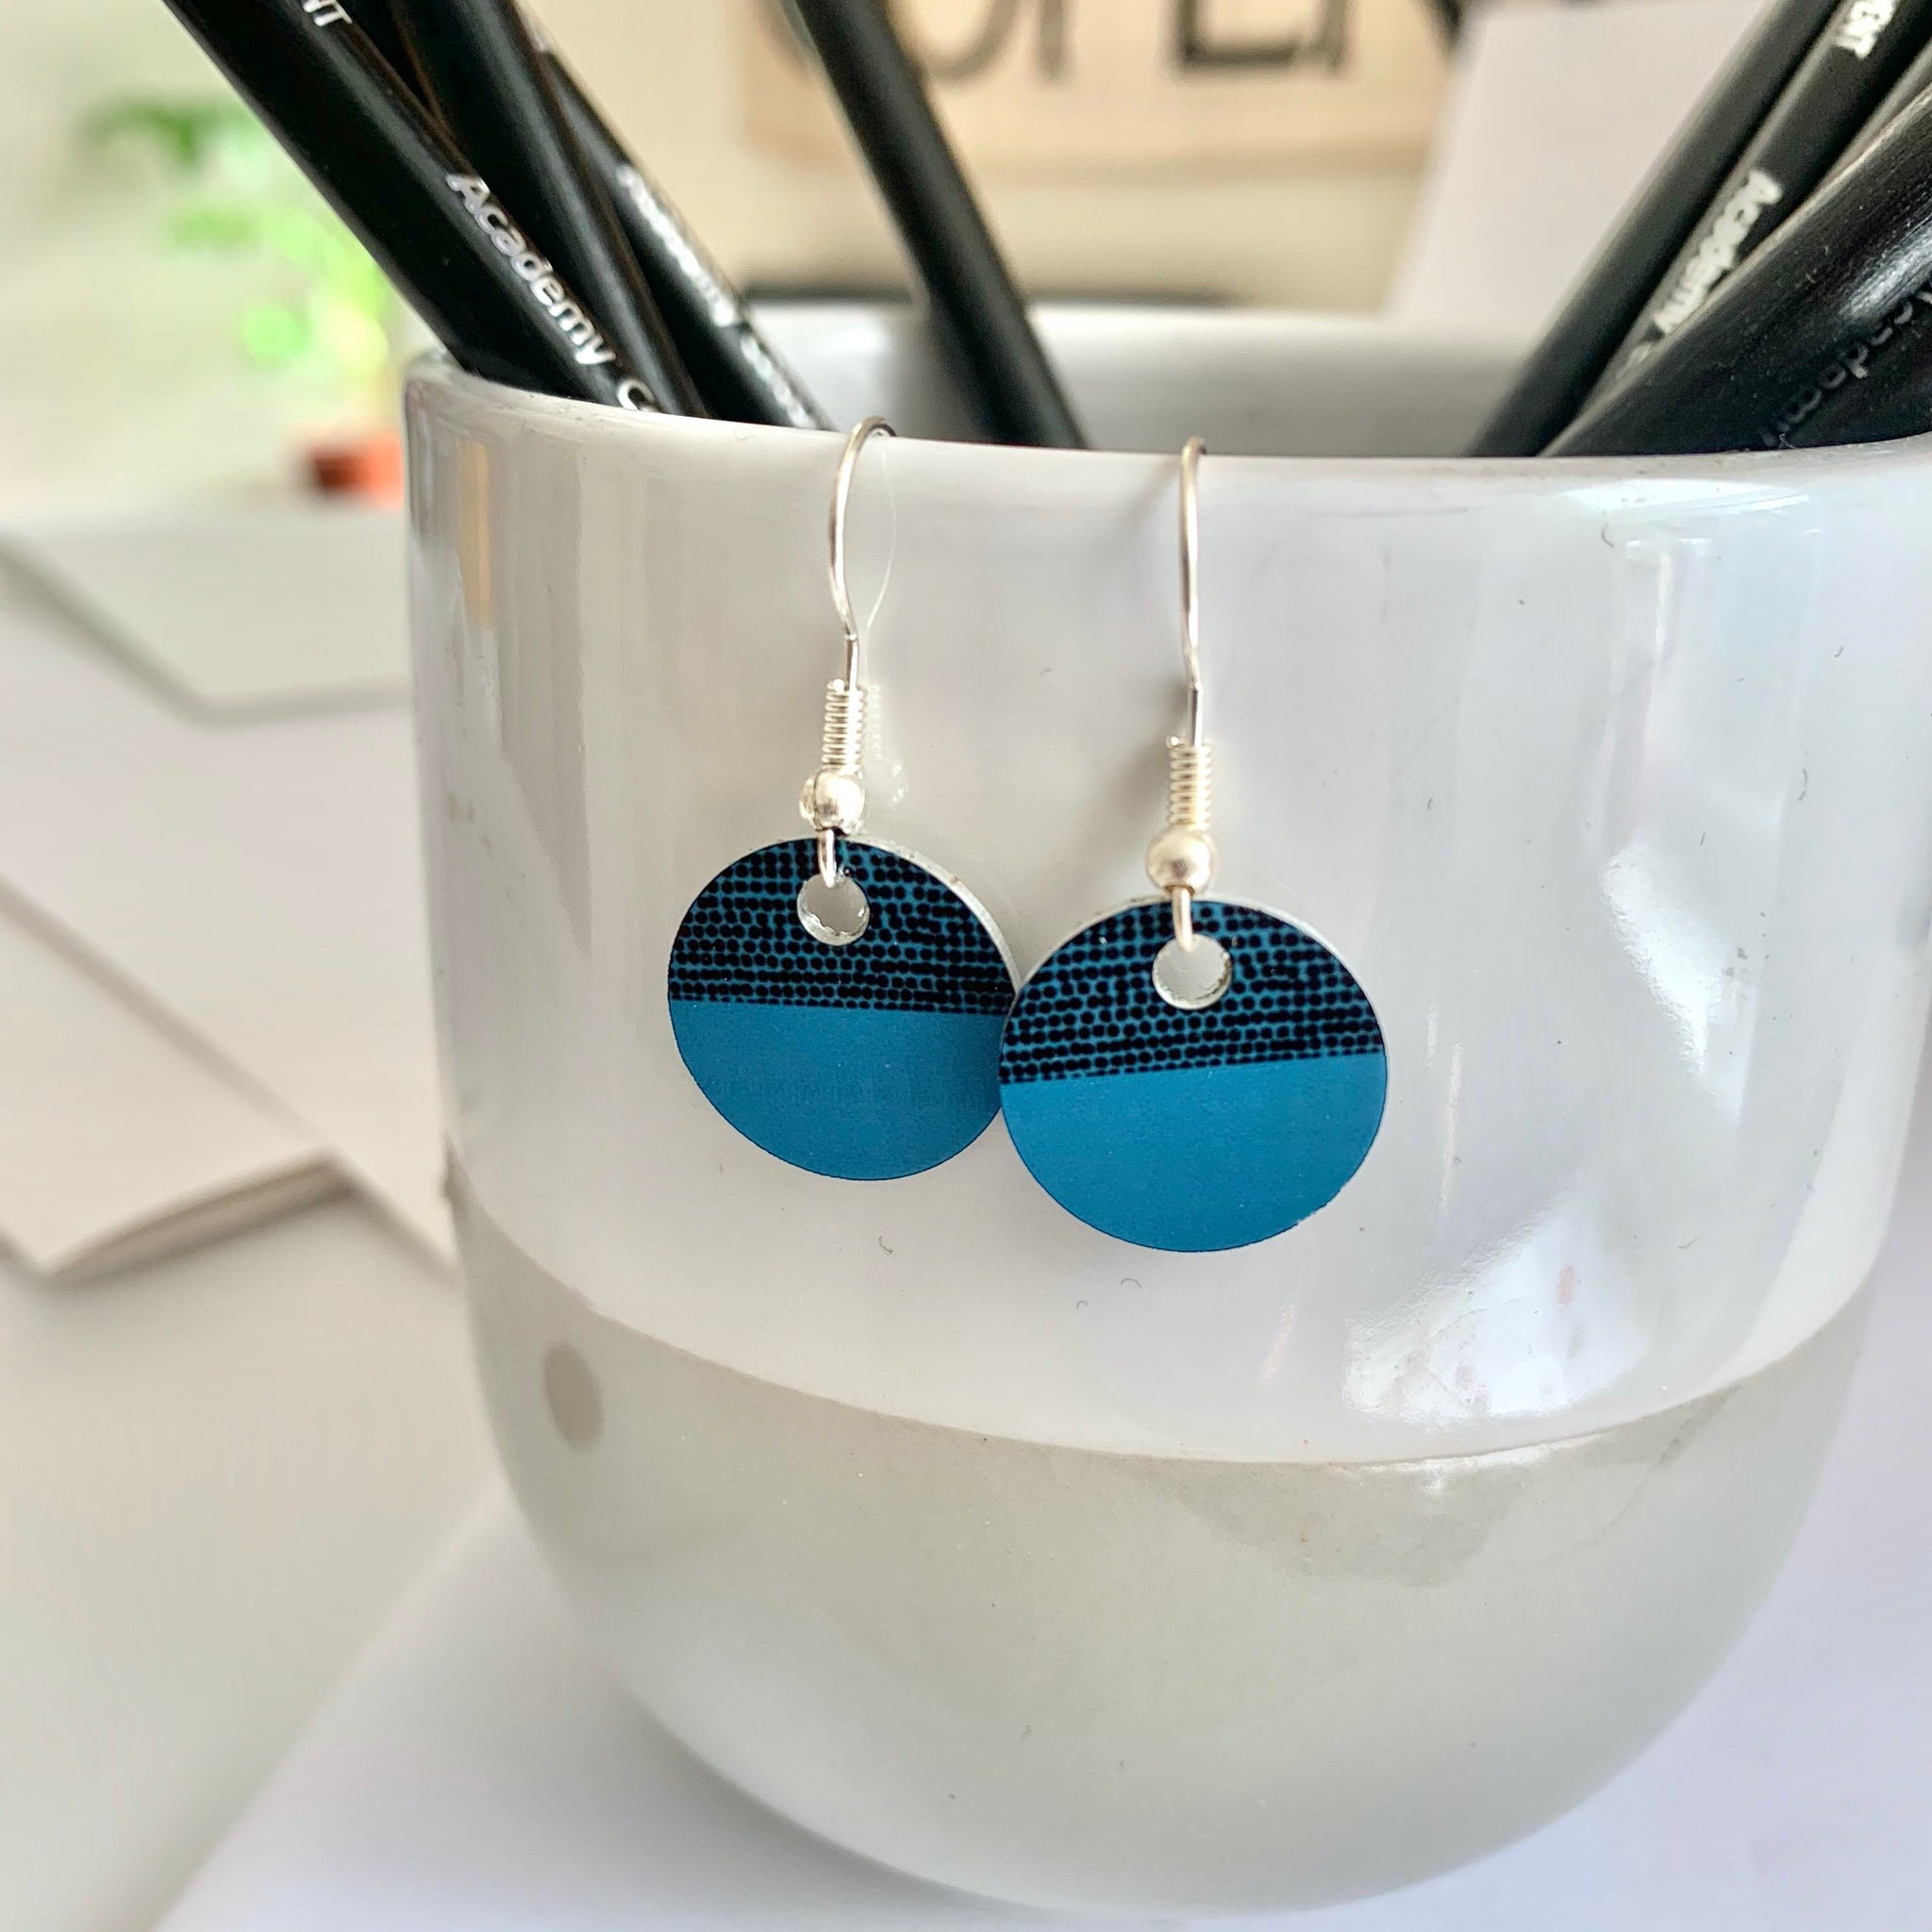 Balance Earrings - Teal (New)